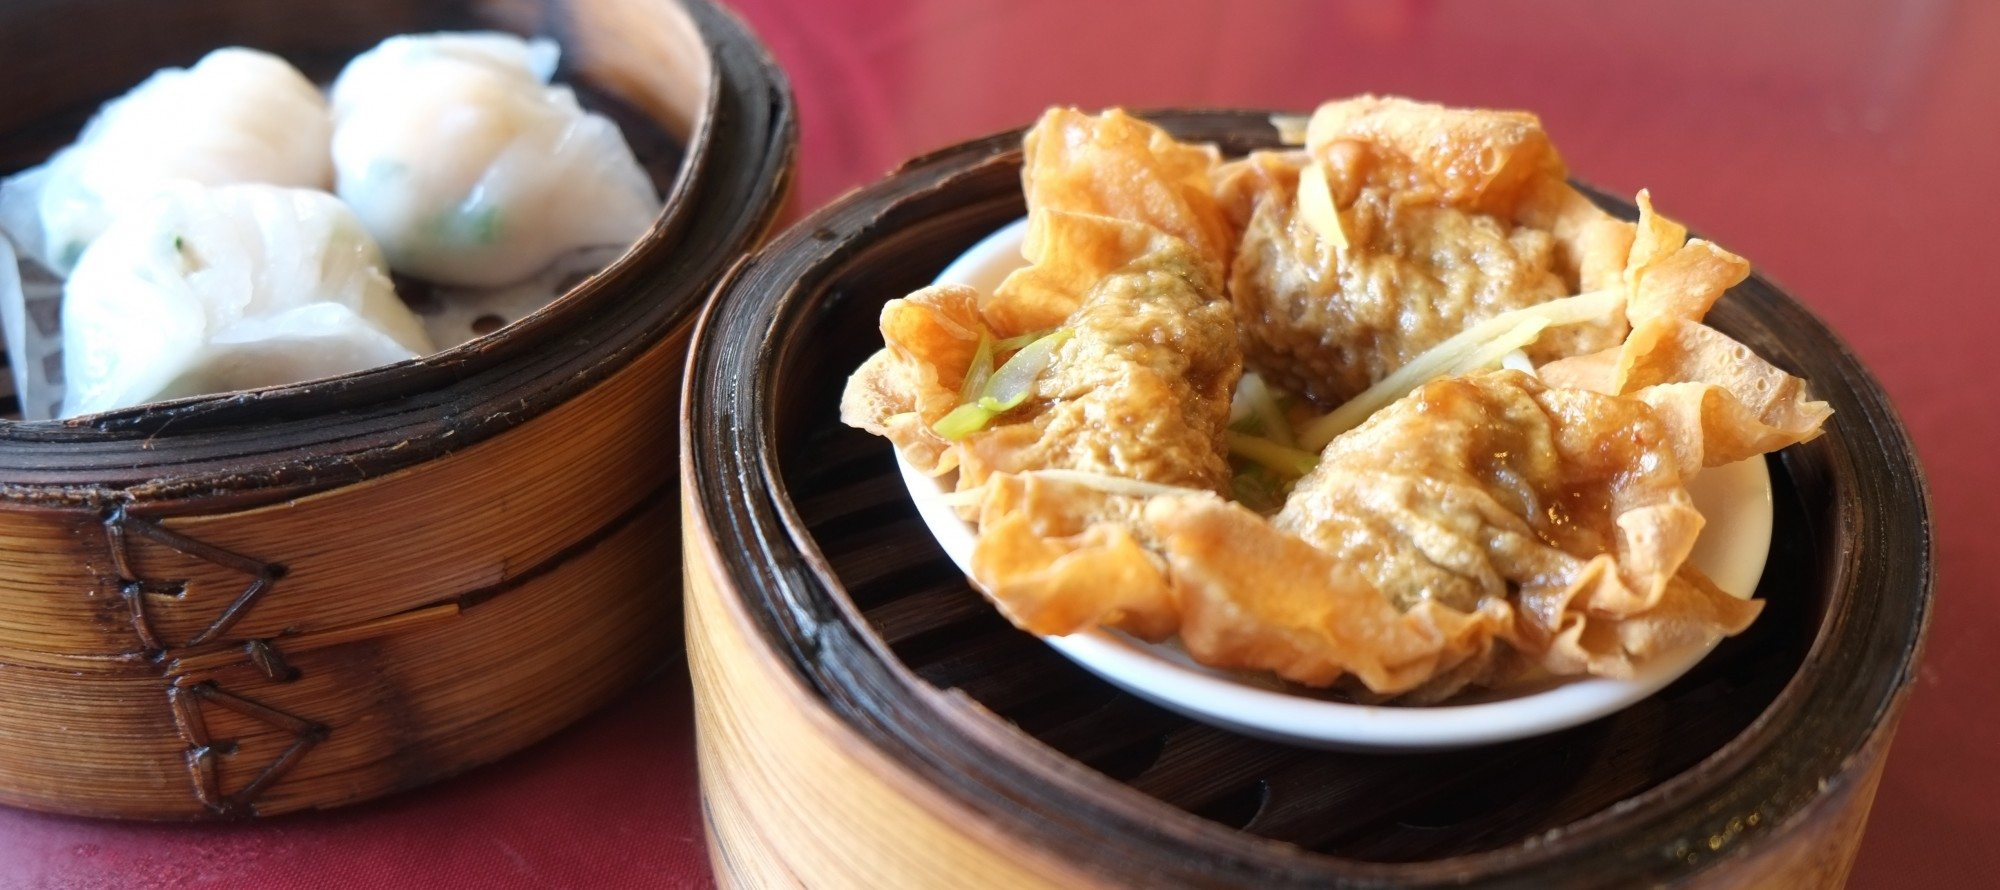 They're back! Less than two years after closing, dim sum resto Hung Sum reopens